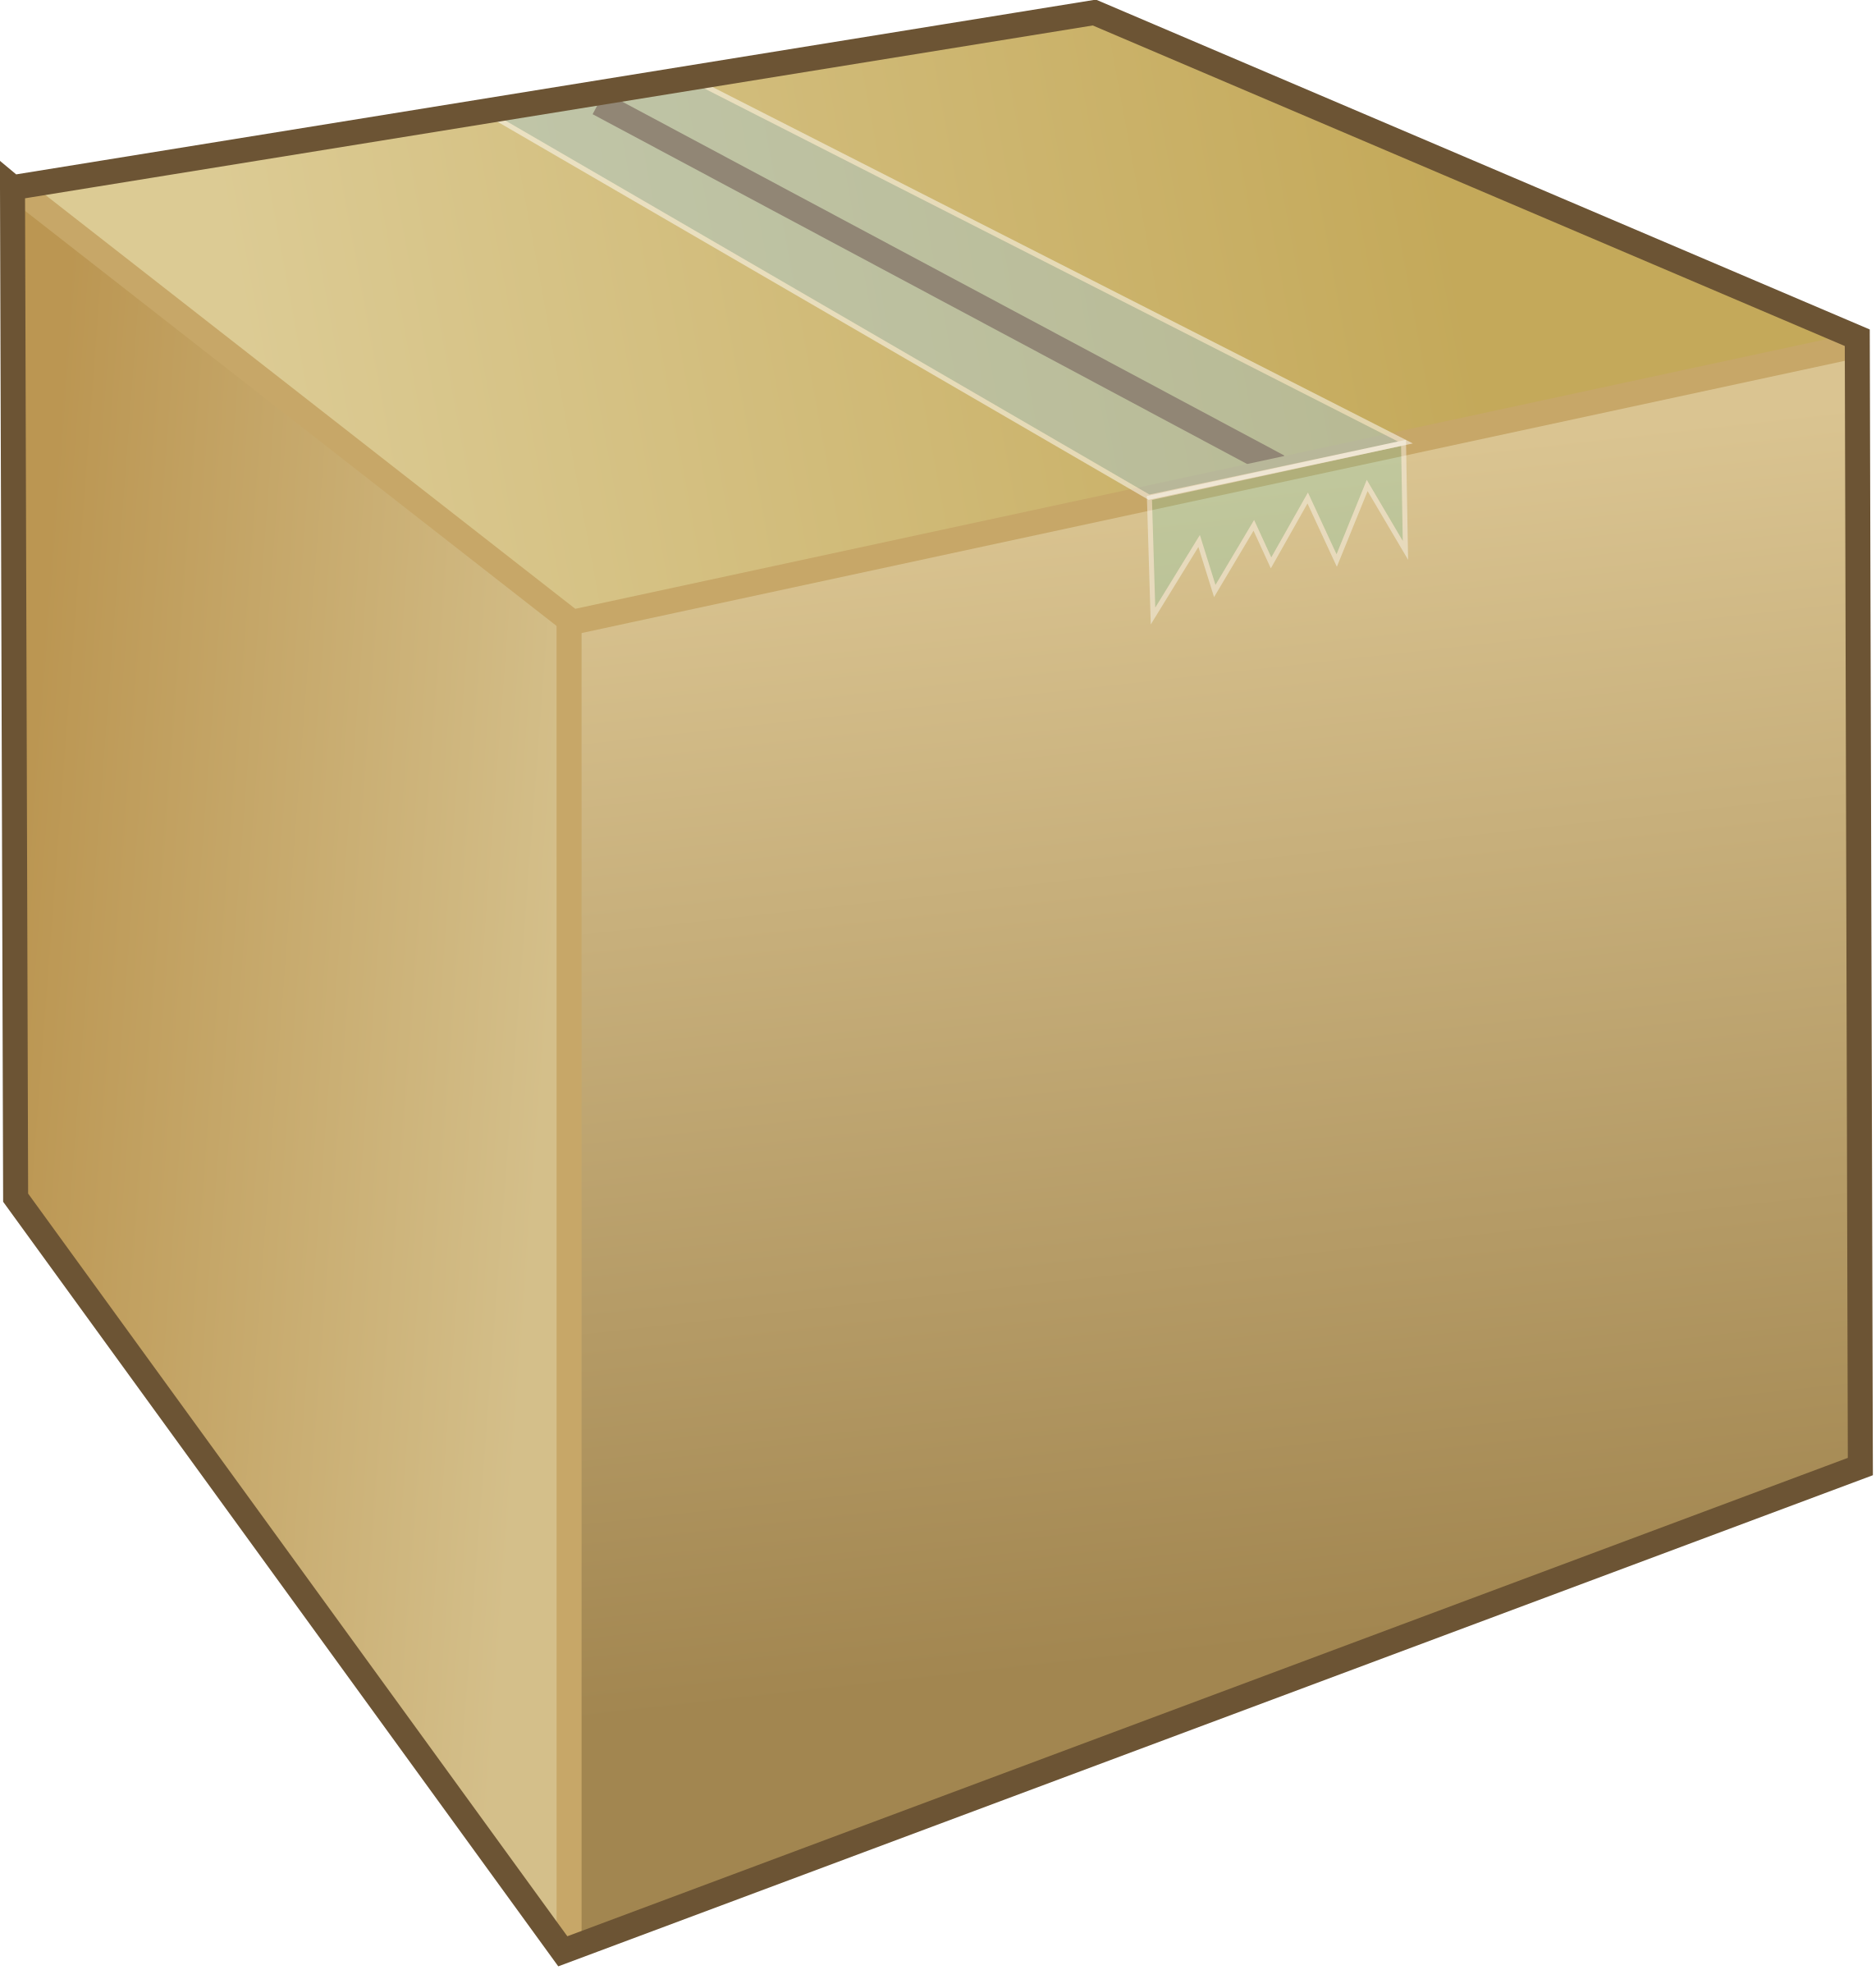 Svg boxes cardboard. Clipart box package big